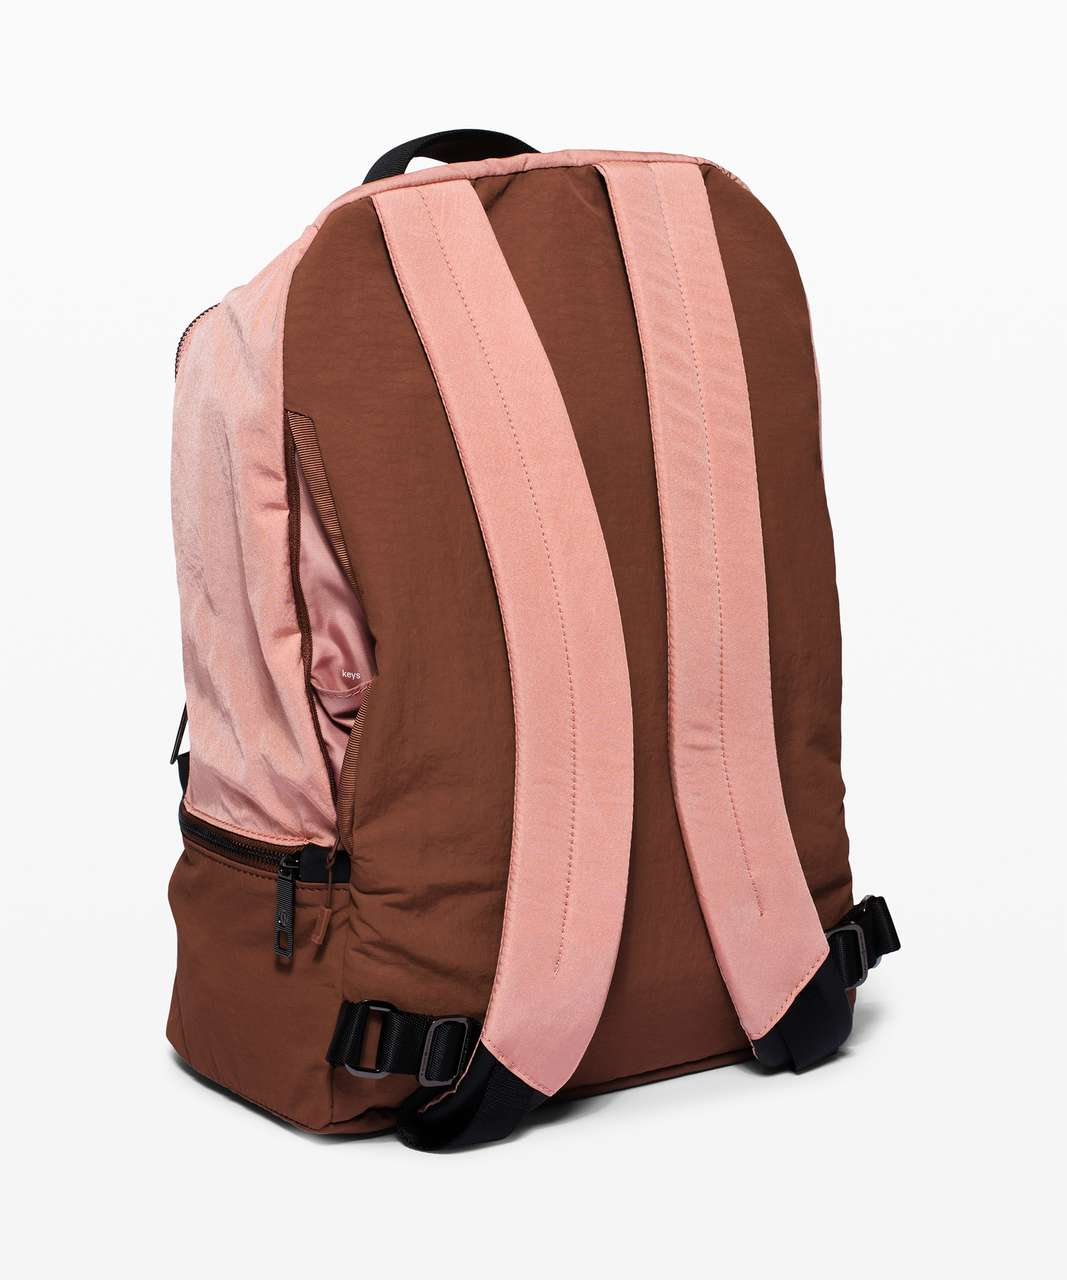 Lululemon City Adventurer Backpack *17L - Pink Pastel / Ancient Copper